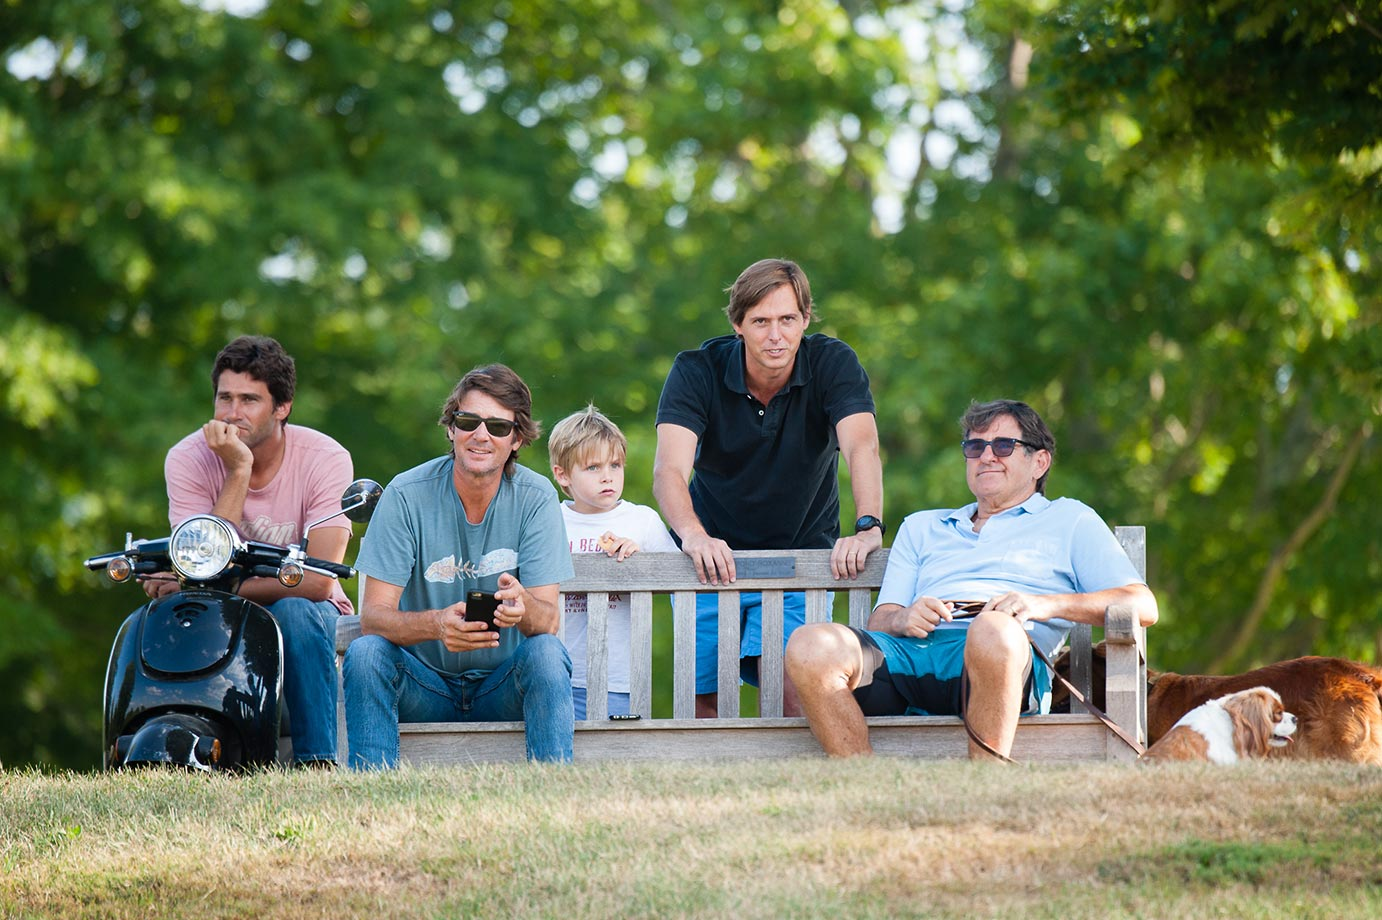 White Birch's Peter Brant and Hilario Ulloa watch the Airstream vs KIG 2015 East Coast Open match with McLaren's Nick Manifold, Tobi Ayersa and Ayersa's son.